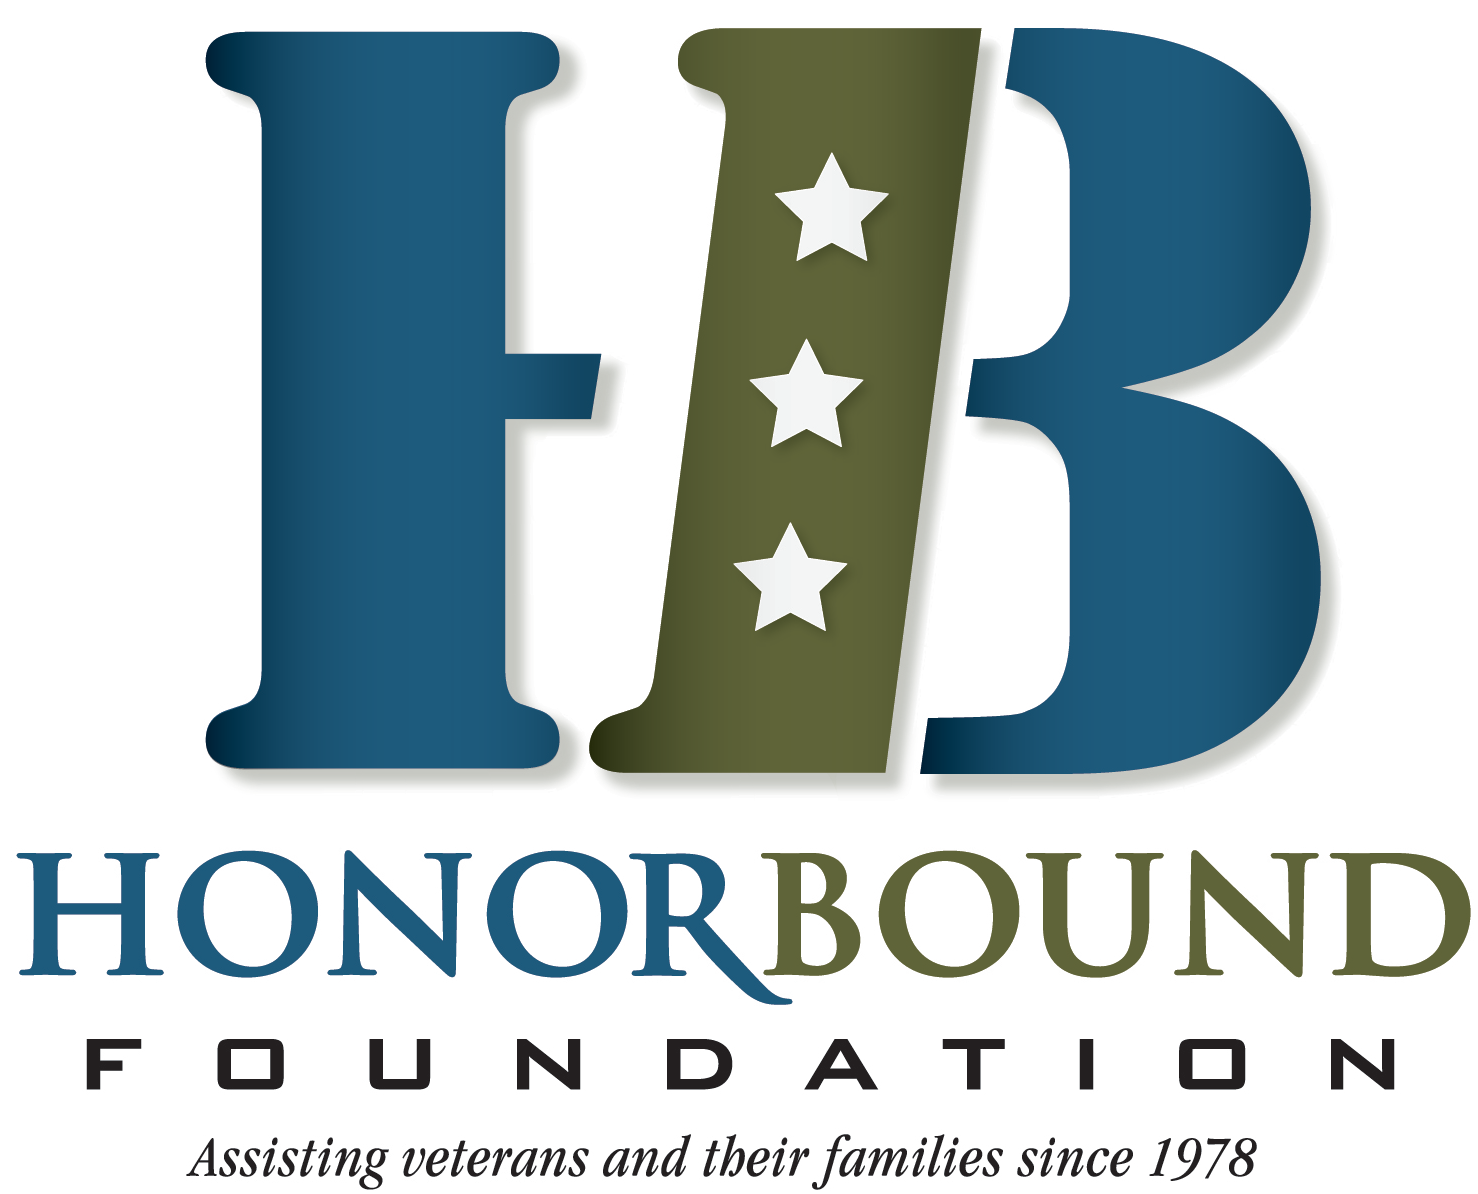 Vermont Car Donations - HonorBound Foundation - DonatecarUSA.com